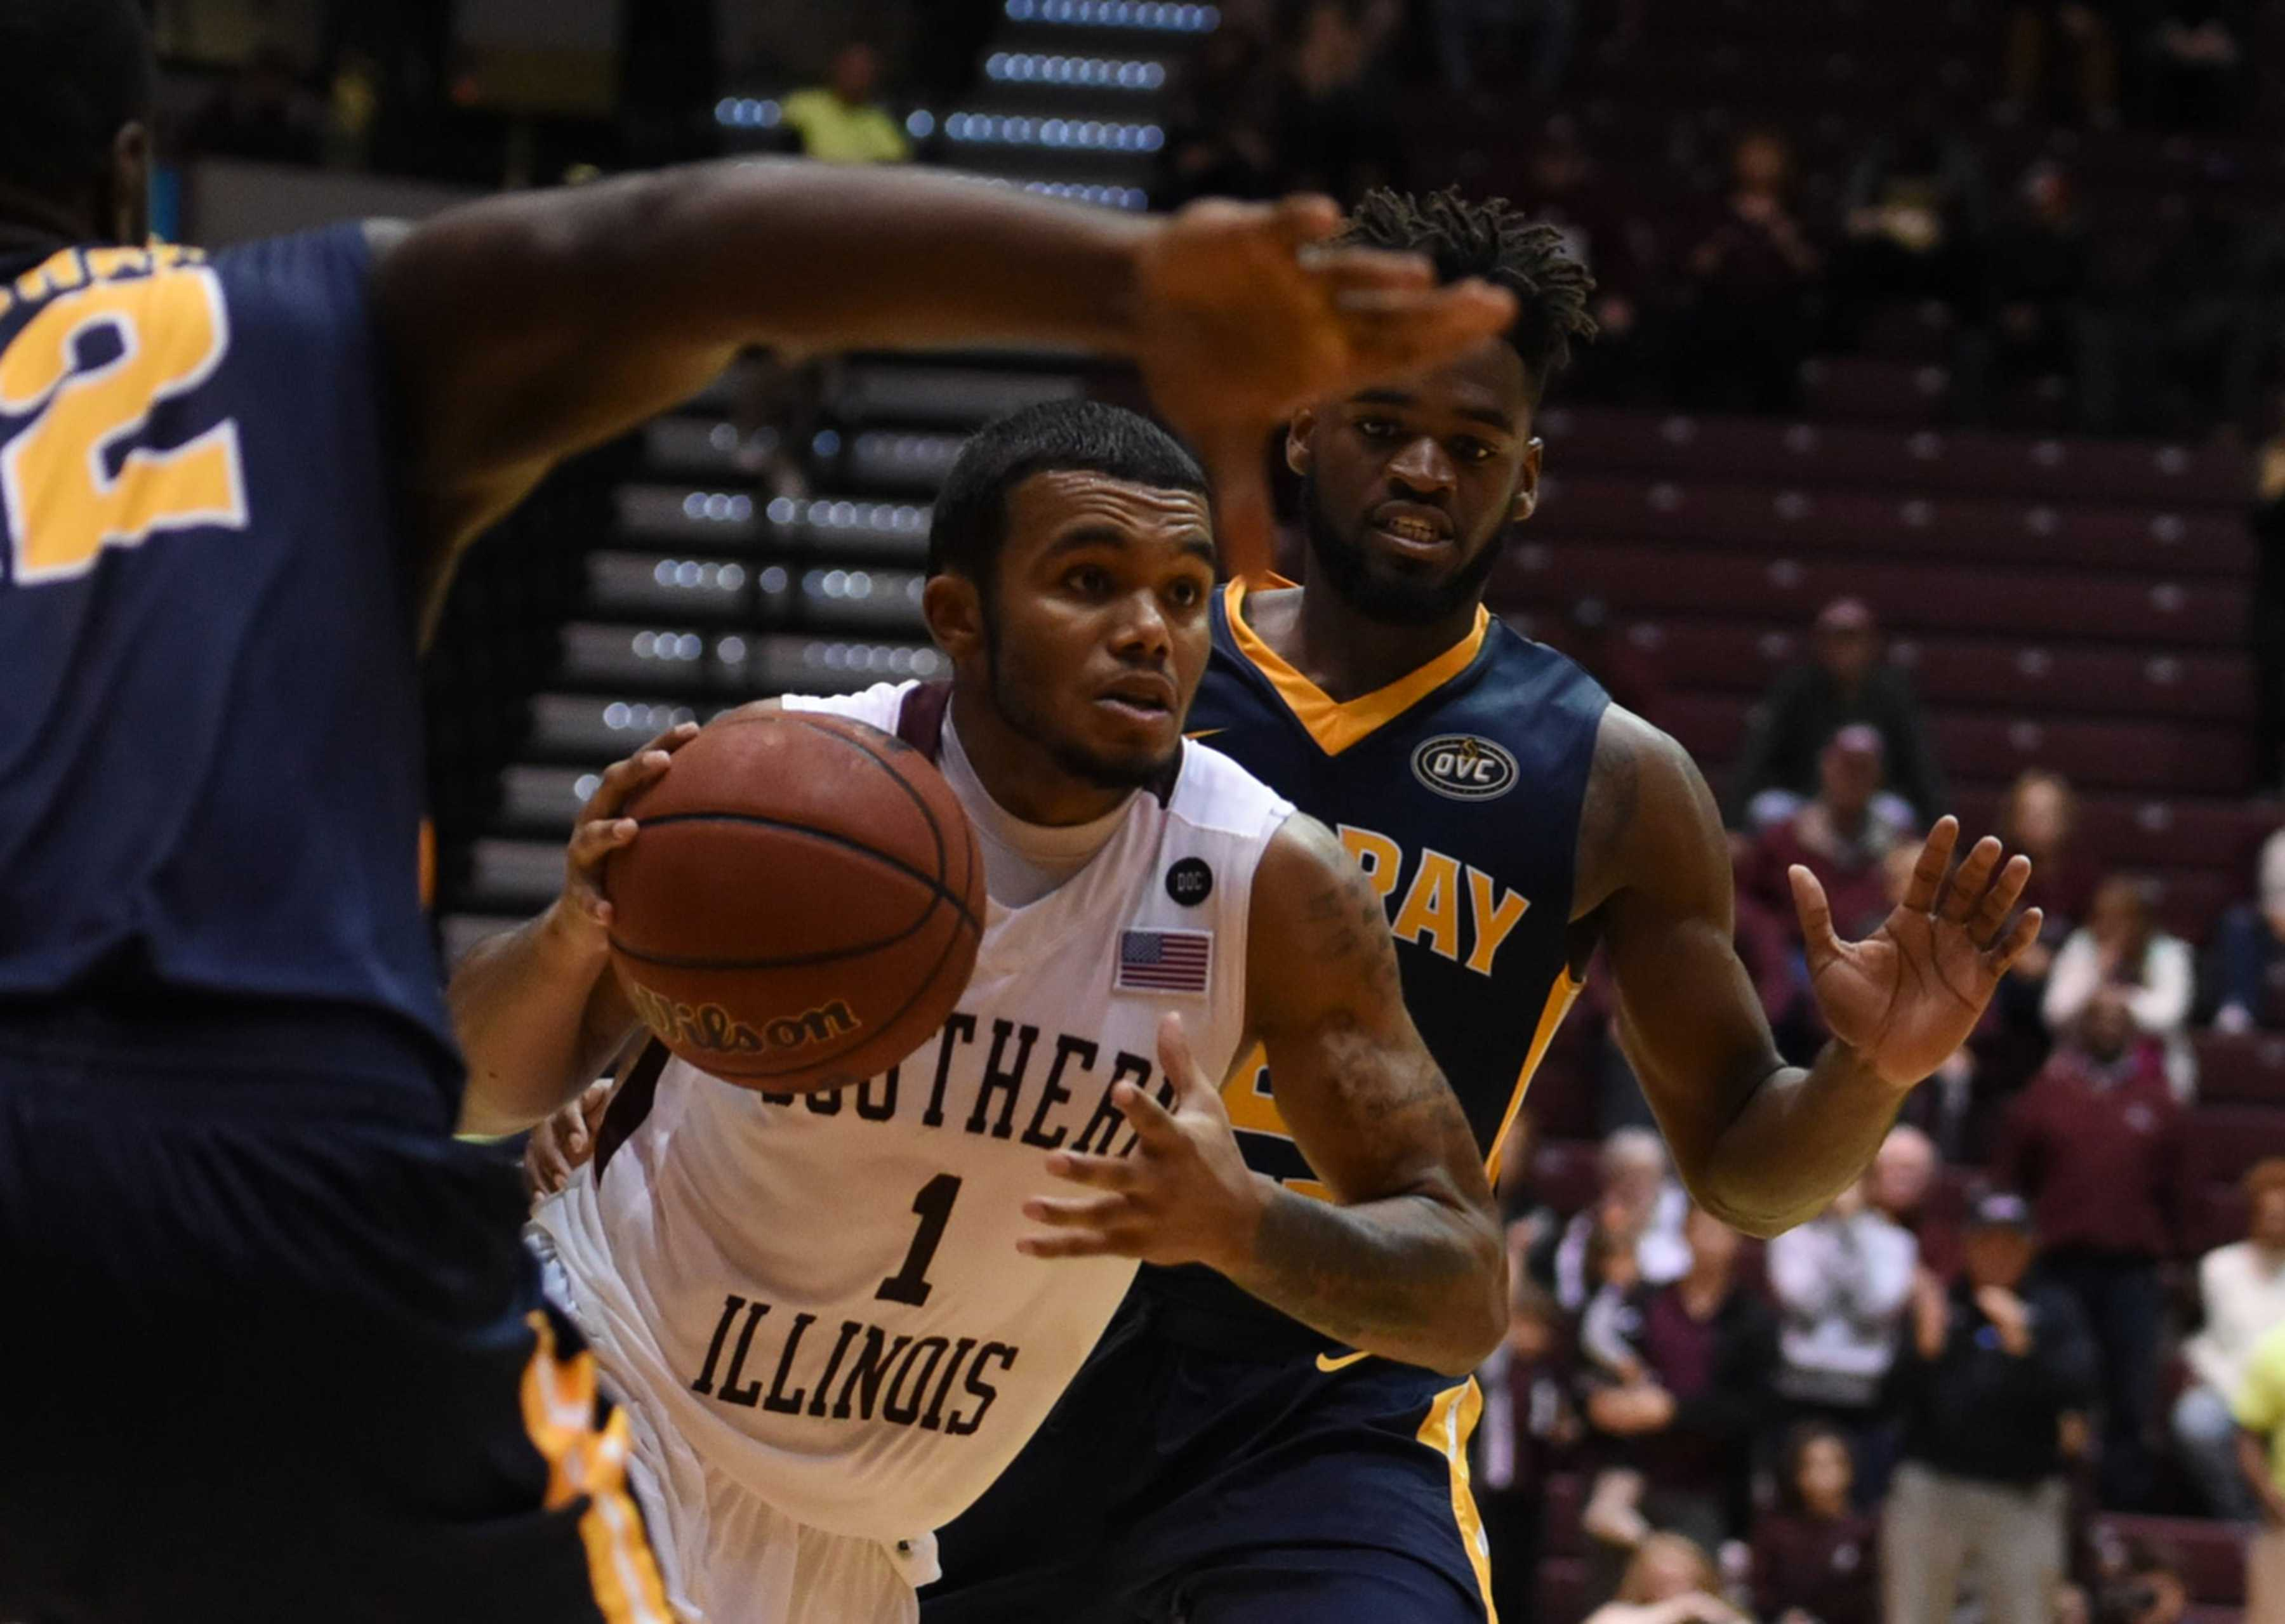 Senior guard Mike Rodriguez drives toward the basket as he is guarded by senior guard Gee McGhee, left, and junior guard Jonathan Stark on Tuesday, Nov. 29, 2016, during SIU's 89-85 overtime win against Murray State at SIU Arena. (Bill Lukitsch | @lukitsbill)